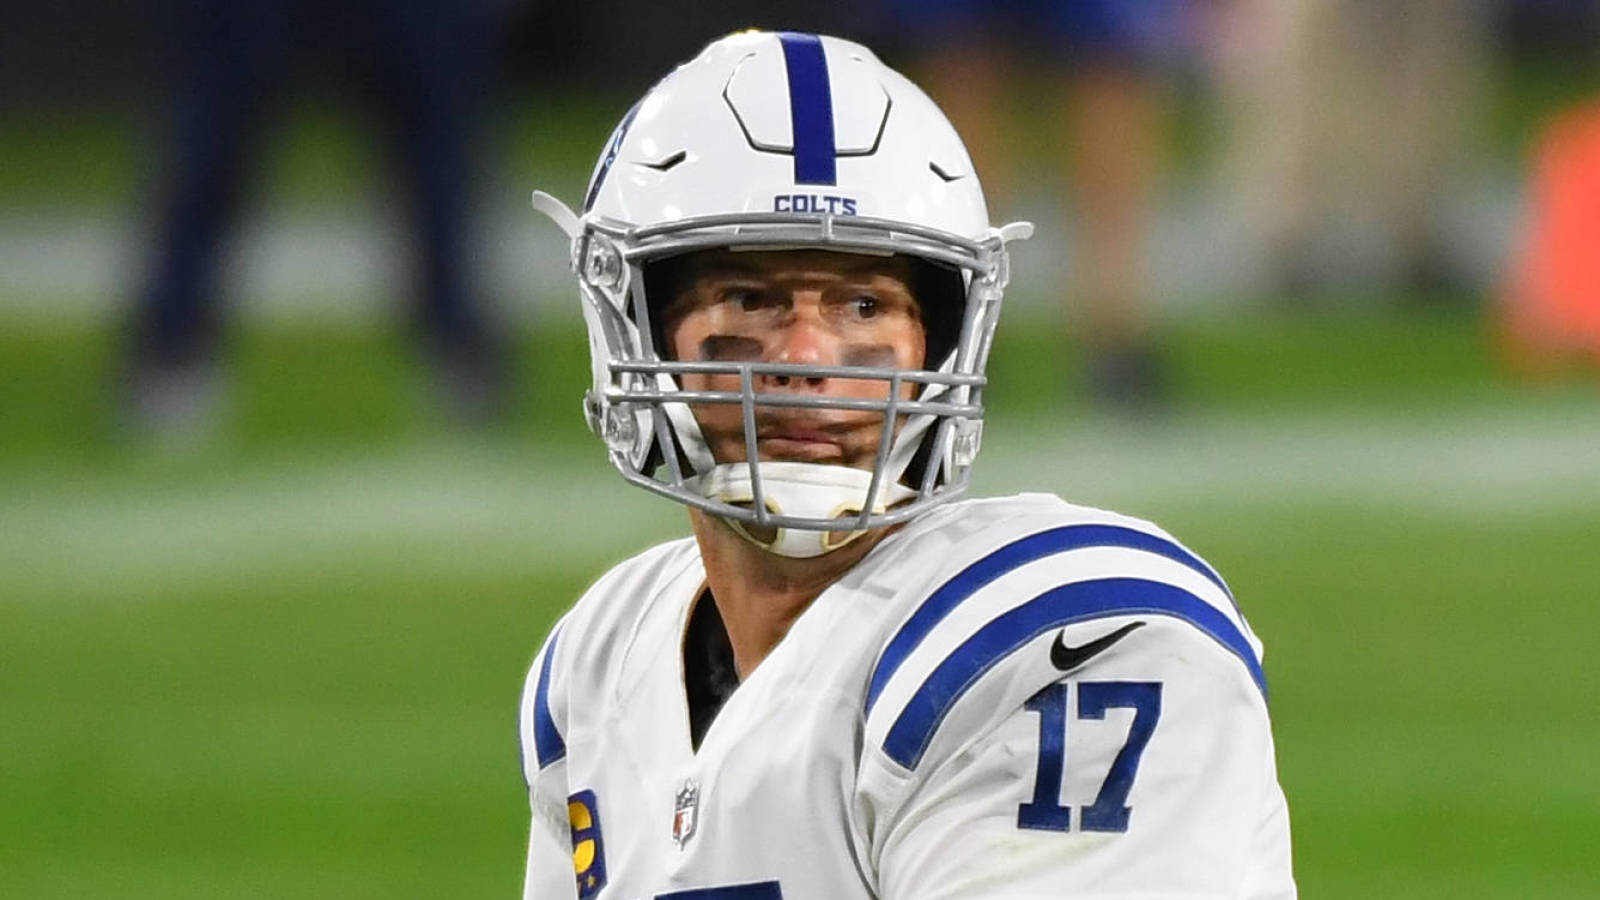 Colts QB Philip Rivers (toe) missing practice only as a precaution